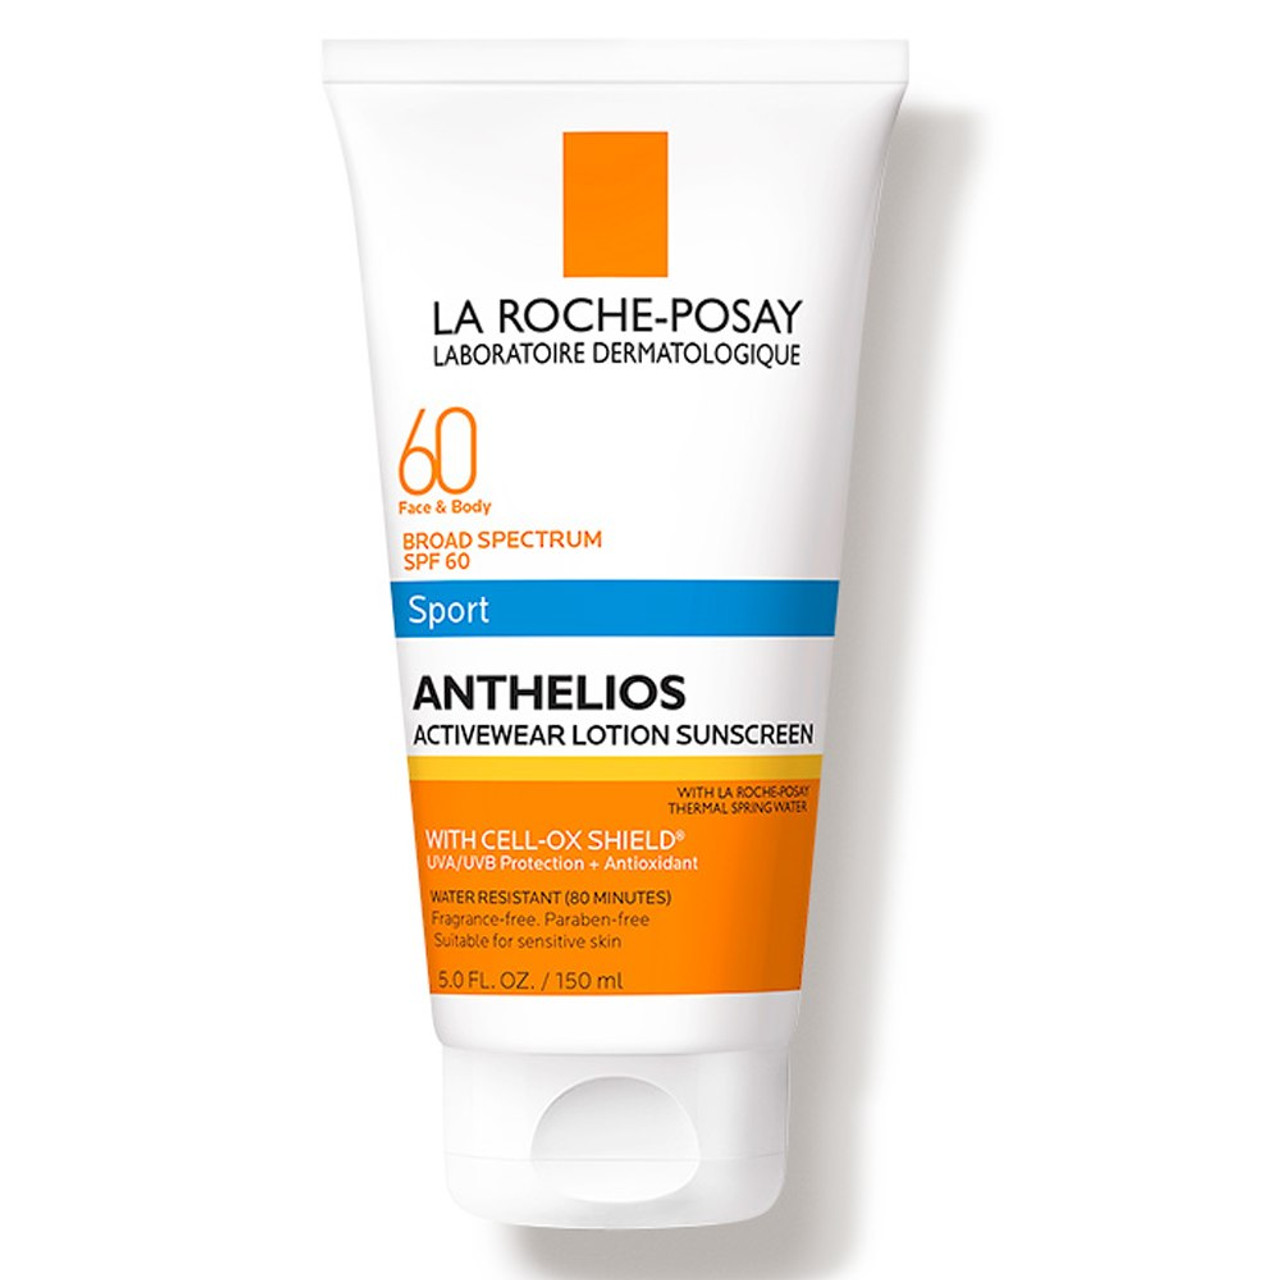 La Roche Posay Anthelios Sport Activewear Sunscreen SPF 60